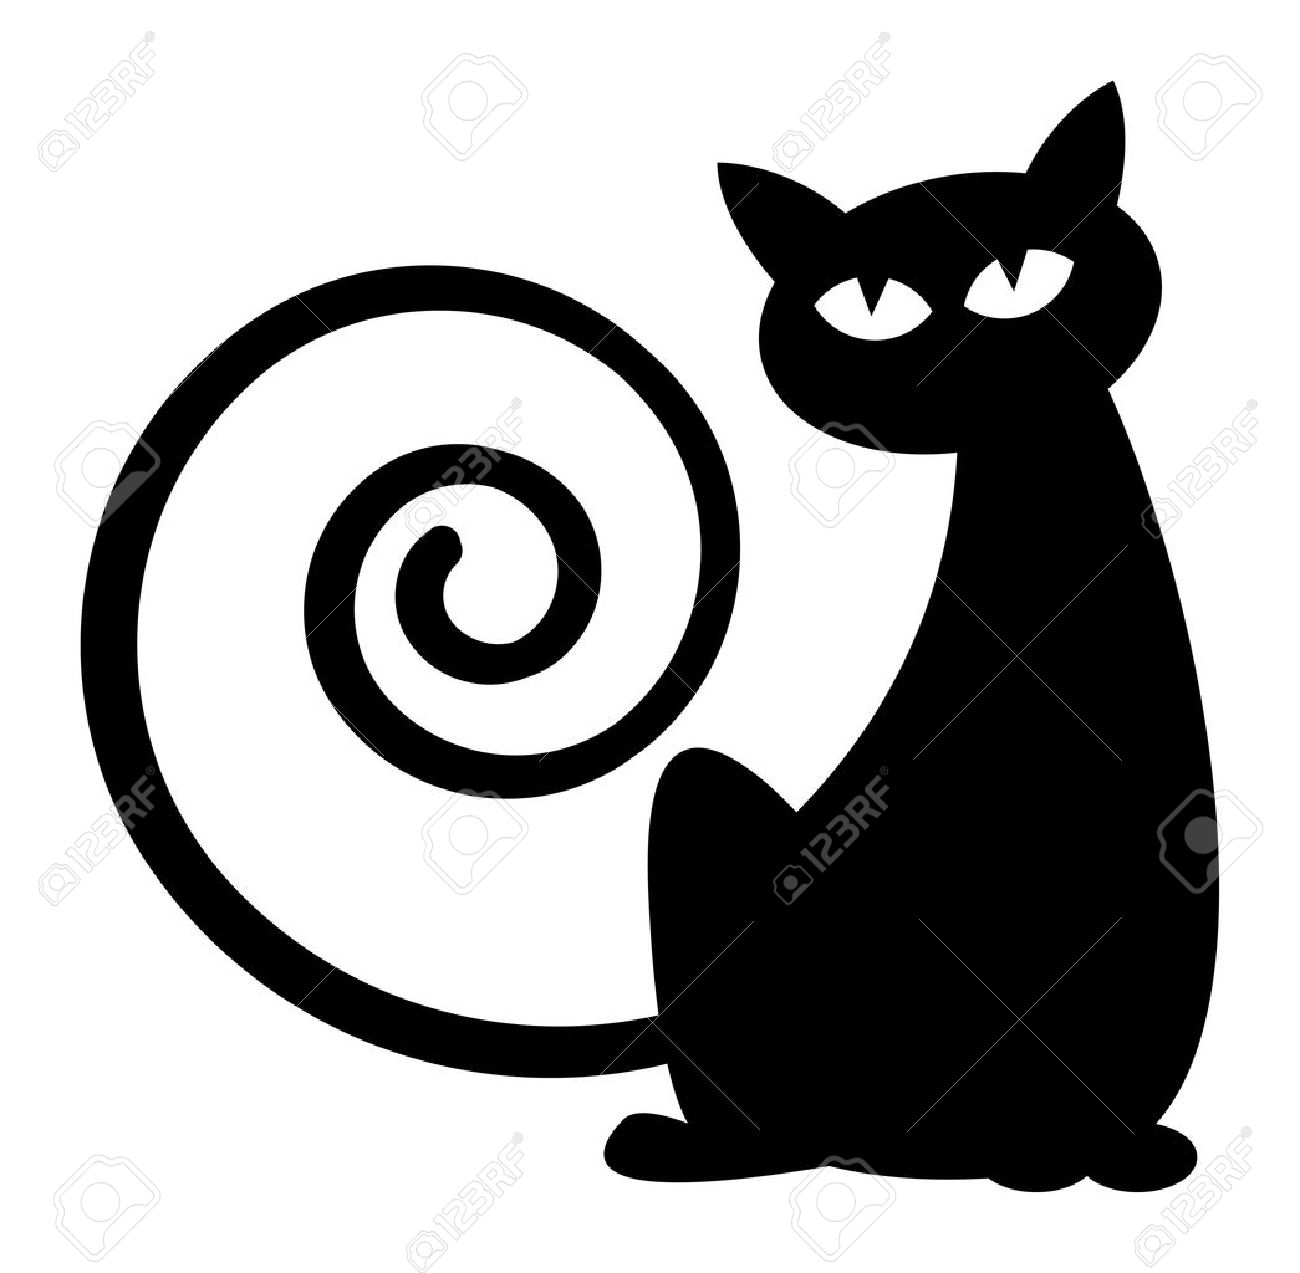 Cat Silhouette Stock Photos Images. Royalty Free Cat Silhouette ...